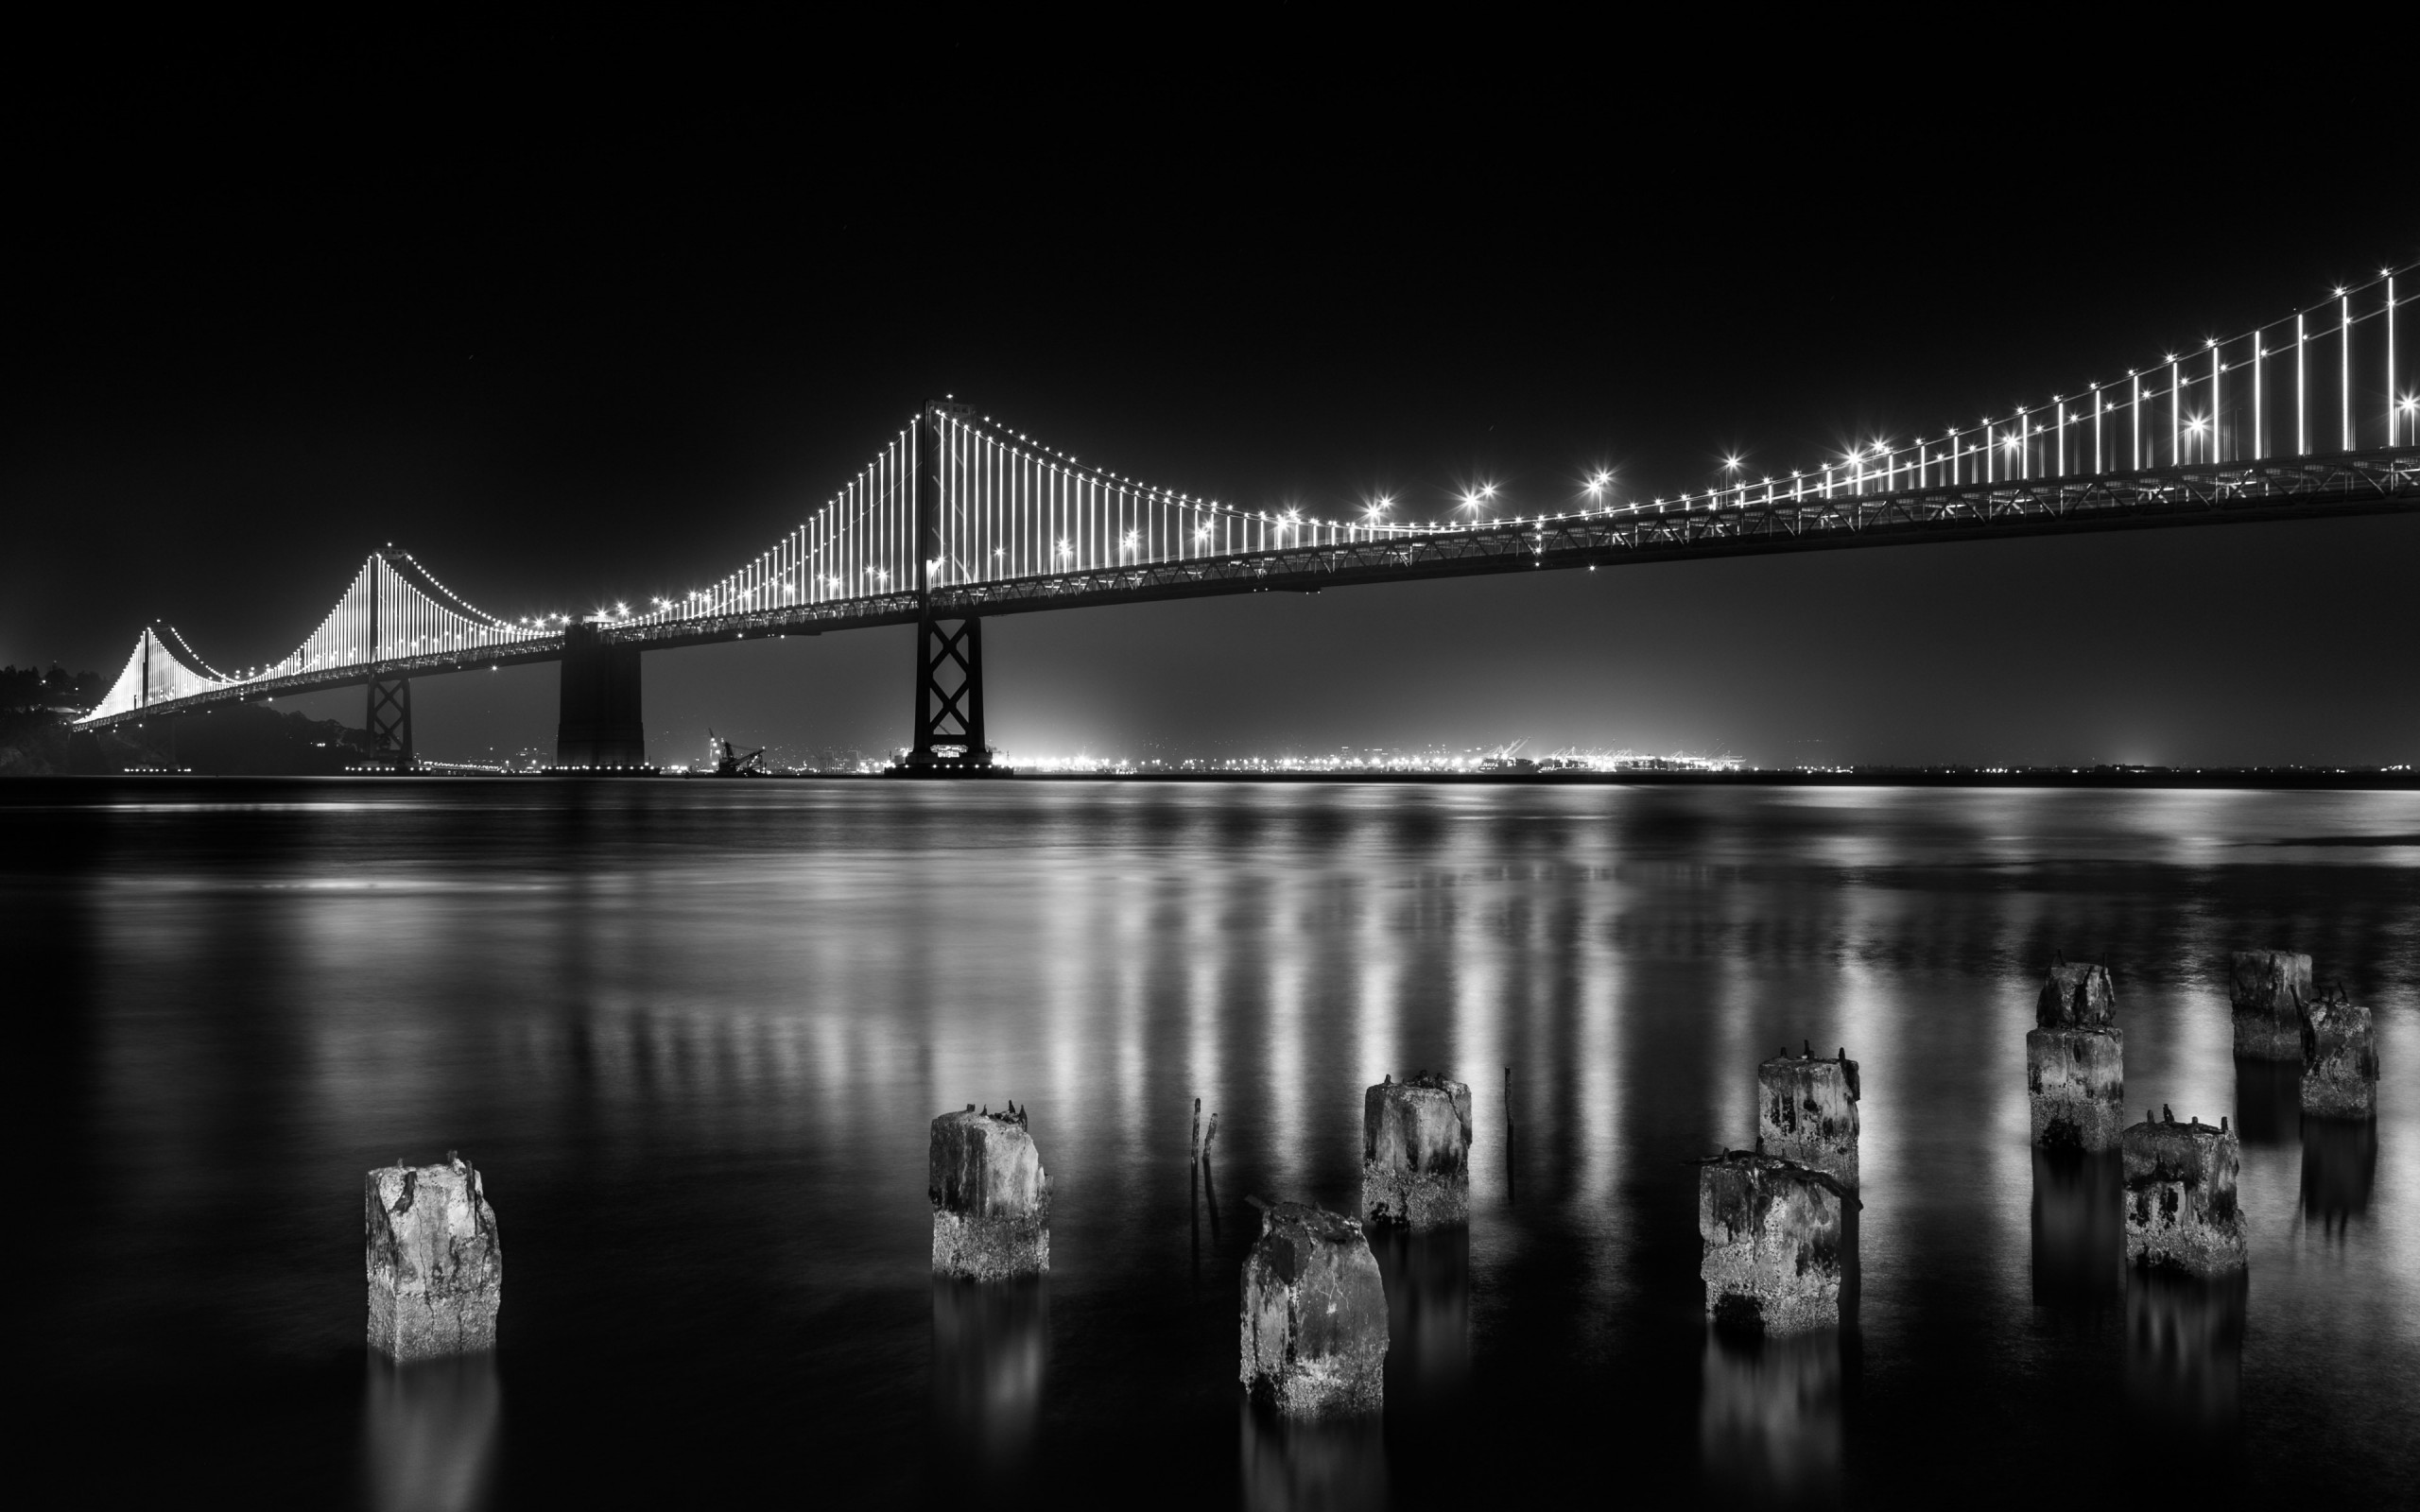 Bay bridge from San Francisco wallpaper 2560x1600